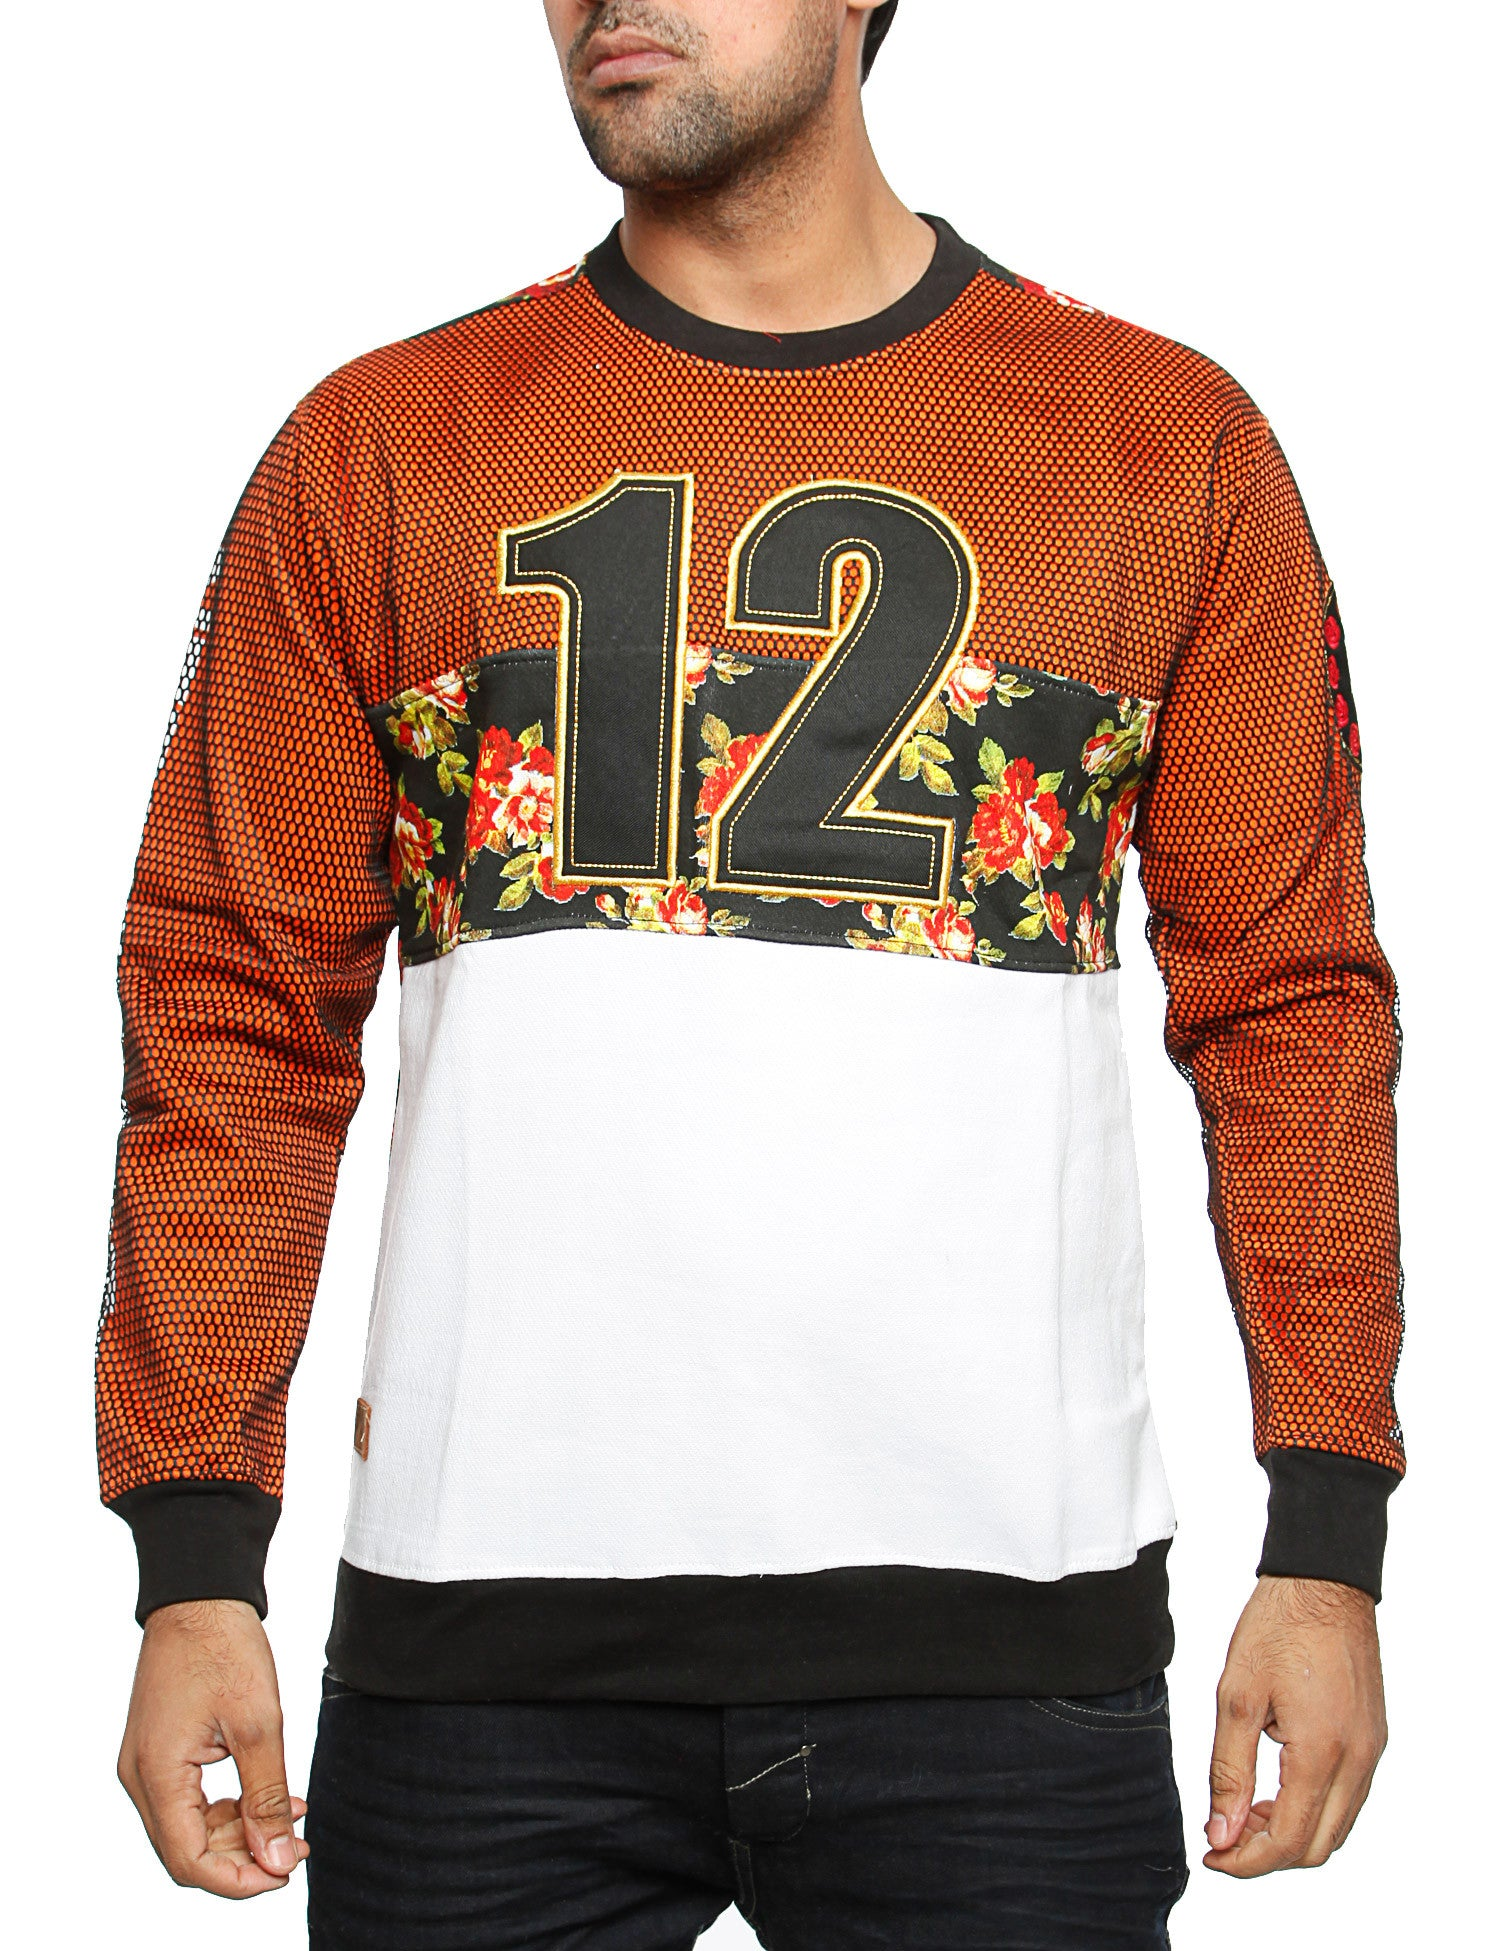 Imperious Dime a Dozen Sweatshirt CS71 White